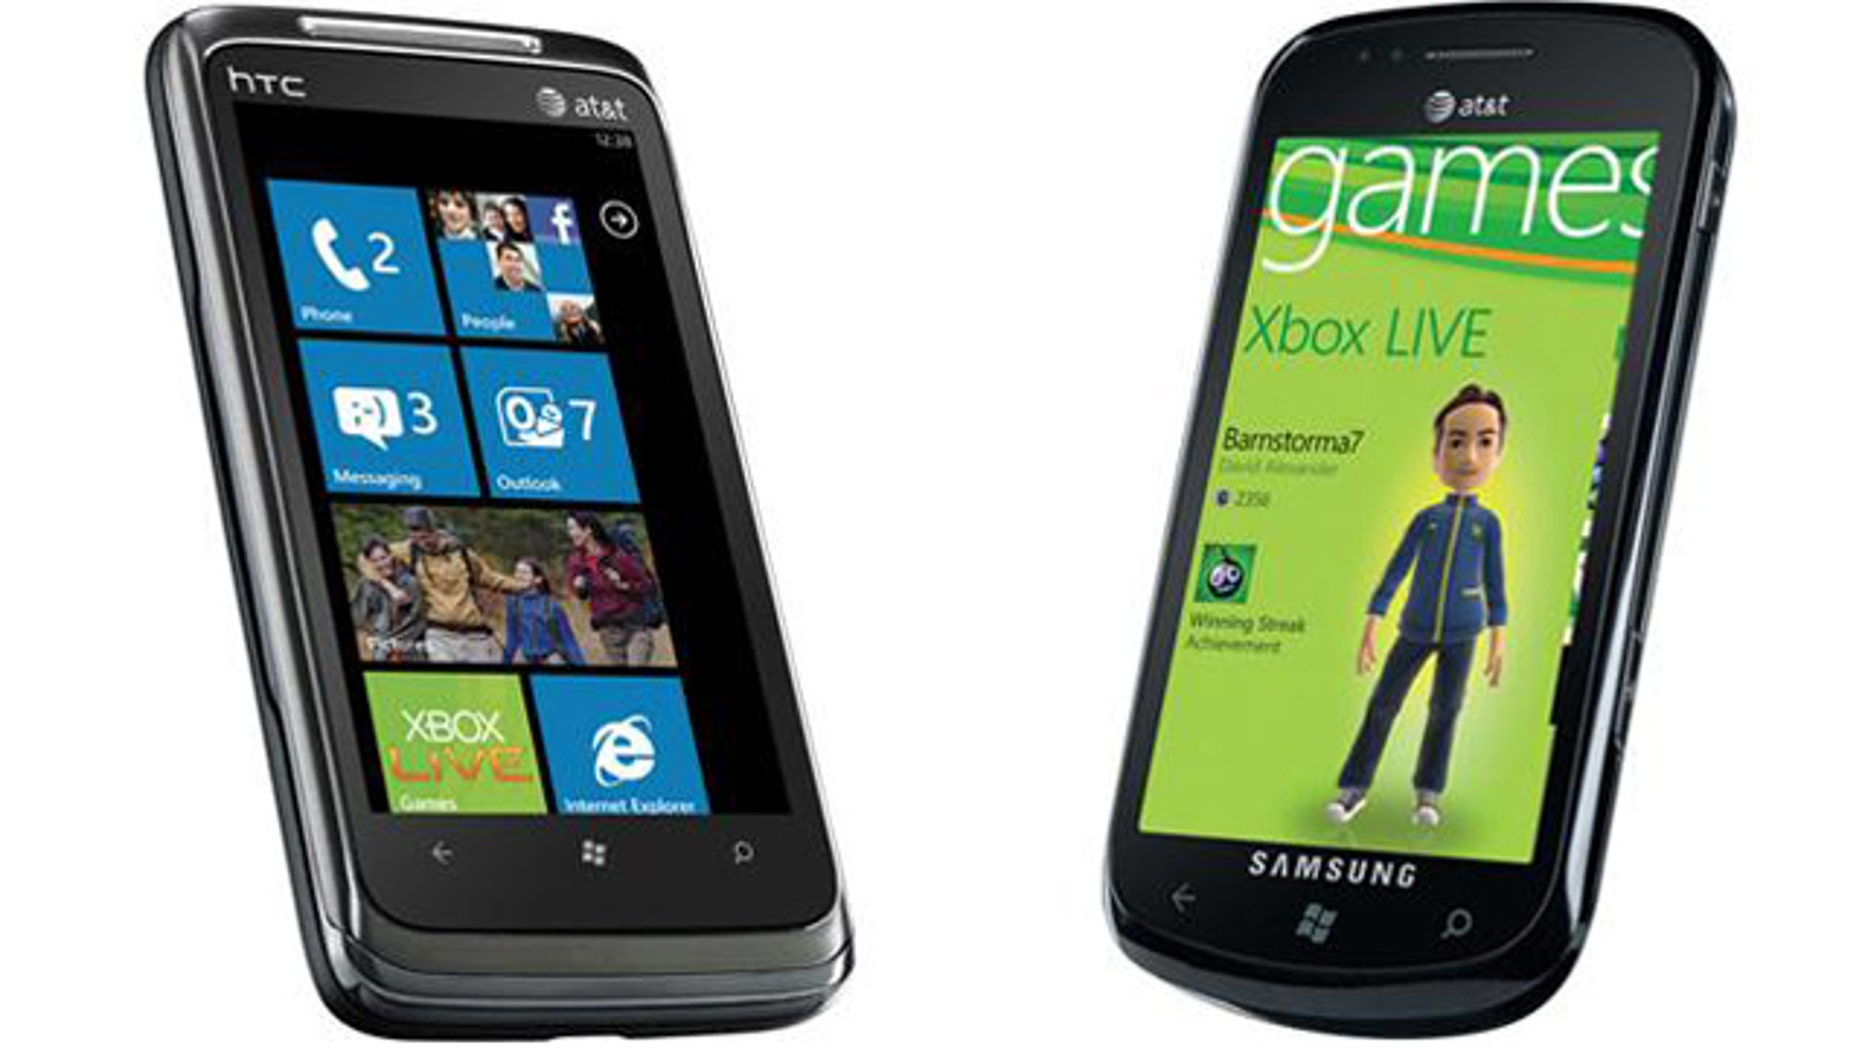 The HTC Surround (at left) and the Samsung Focus (at right), two of the many Windows Phone 7-powered smartphones coming out this Fall.